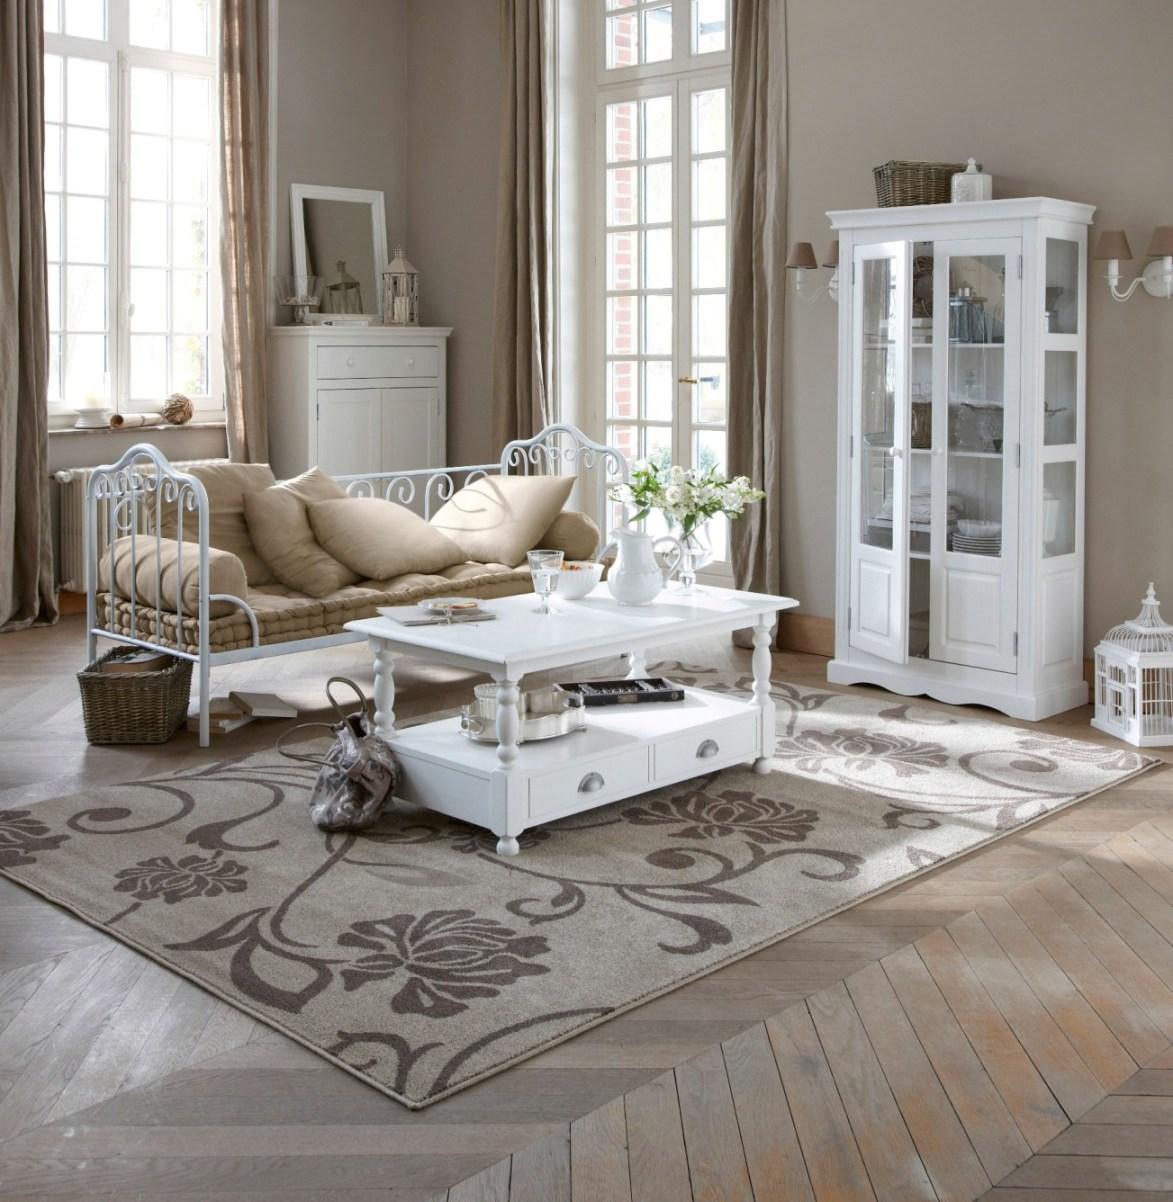 Salon esprit brocante - Salon style campagne chic ...